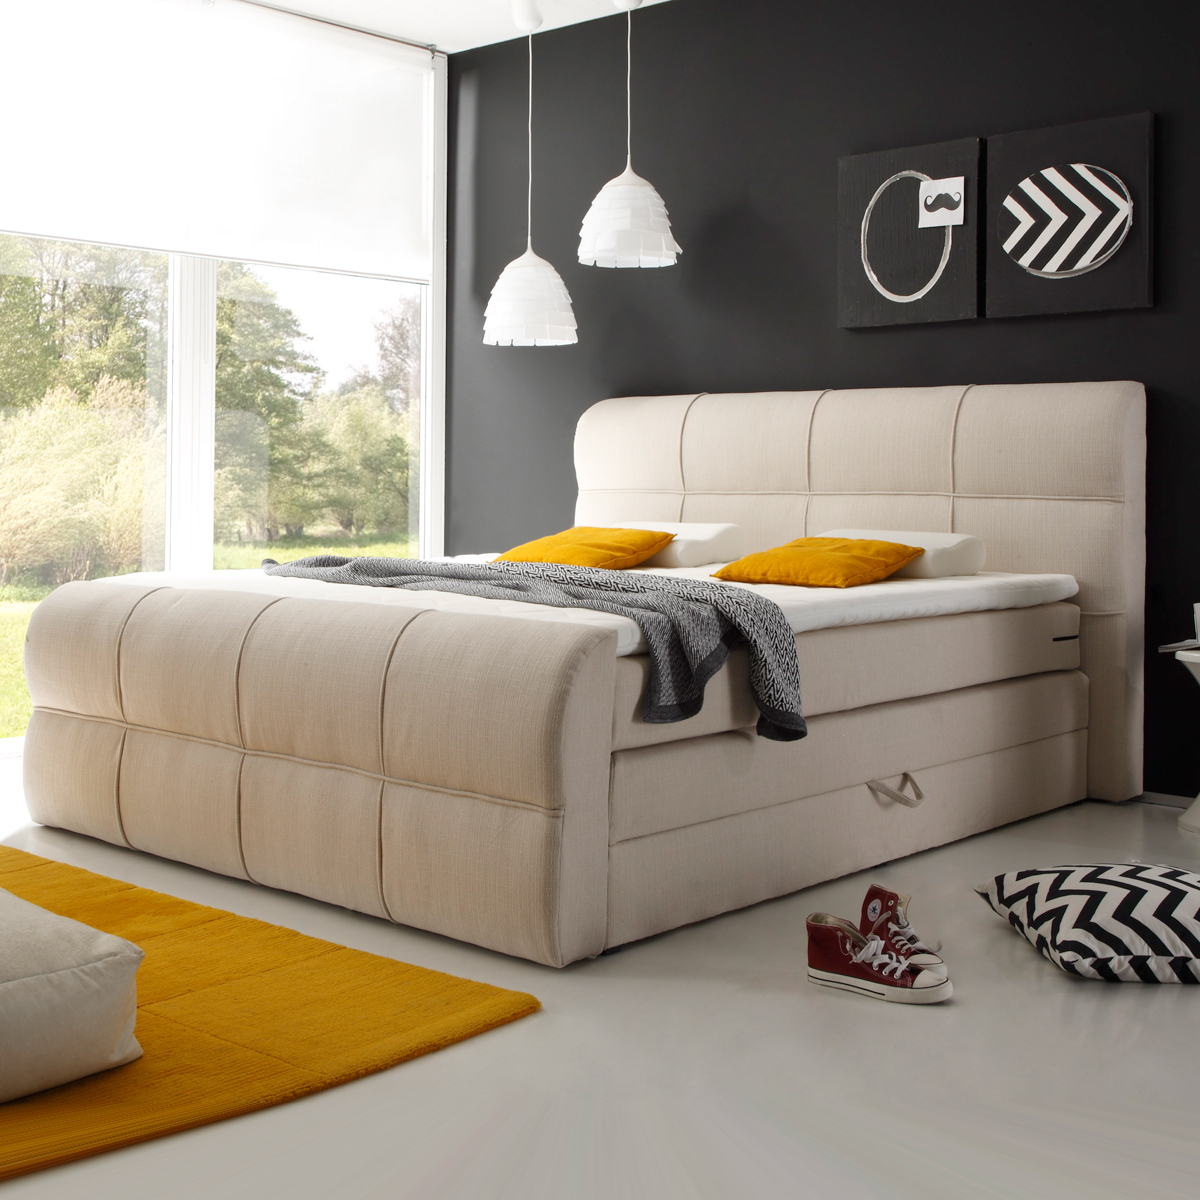 bettlaken boxspringbett topper boxspringbett inkl topper. Black Bedroom Furniture Sets. Home Design Ideas